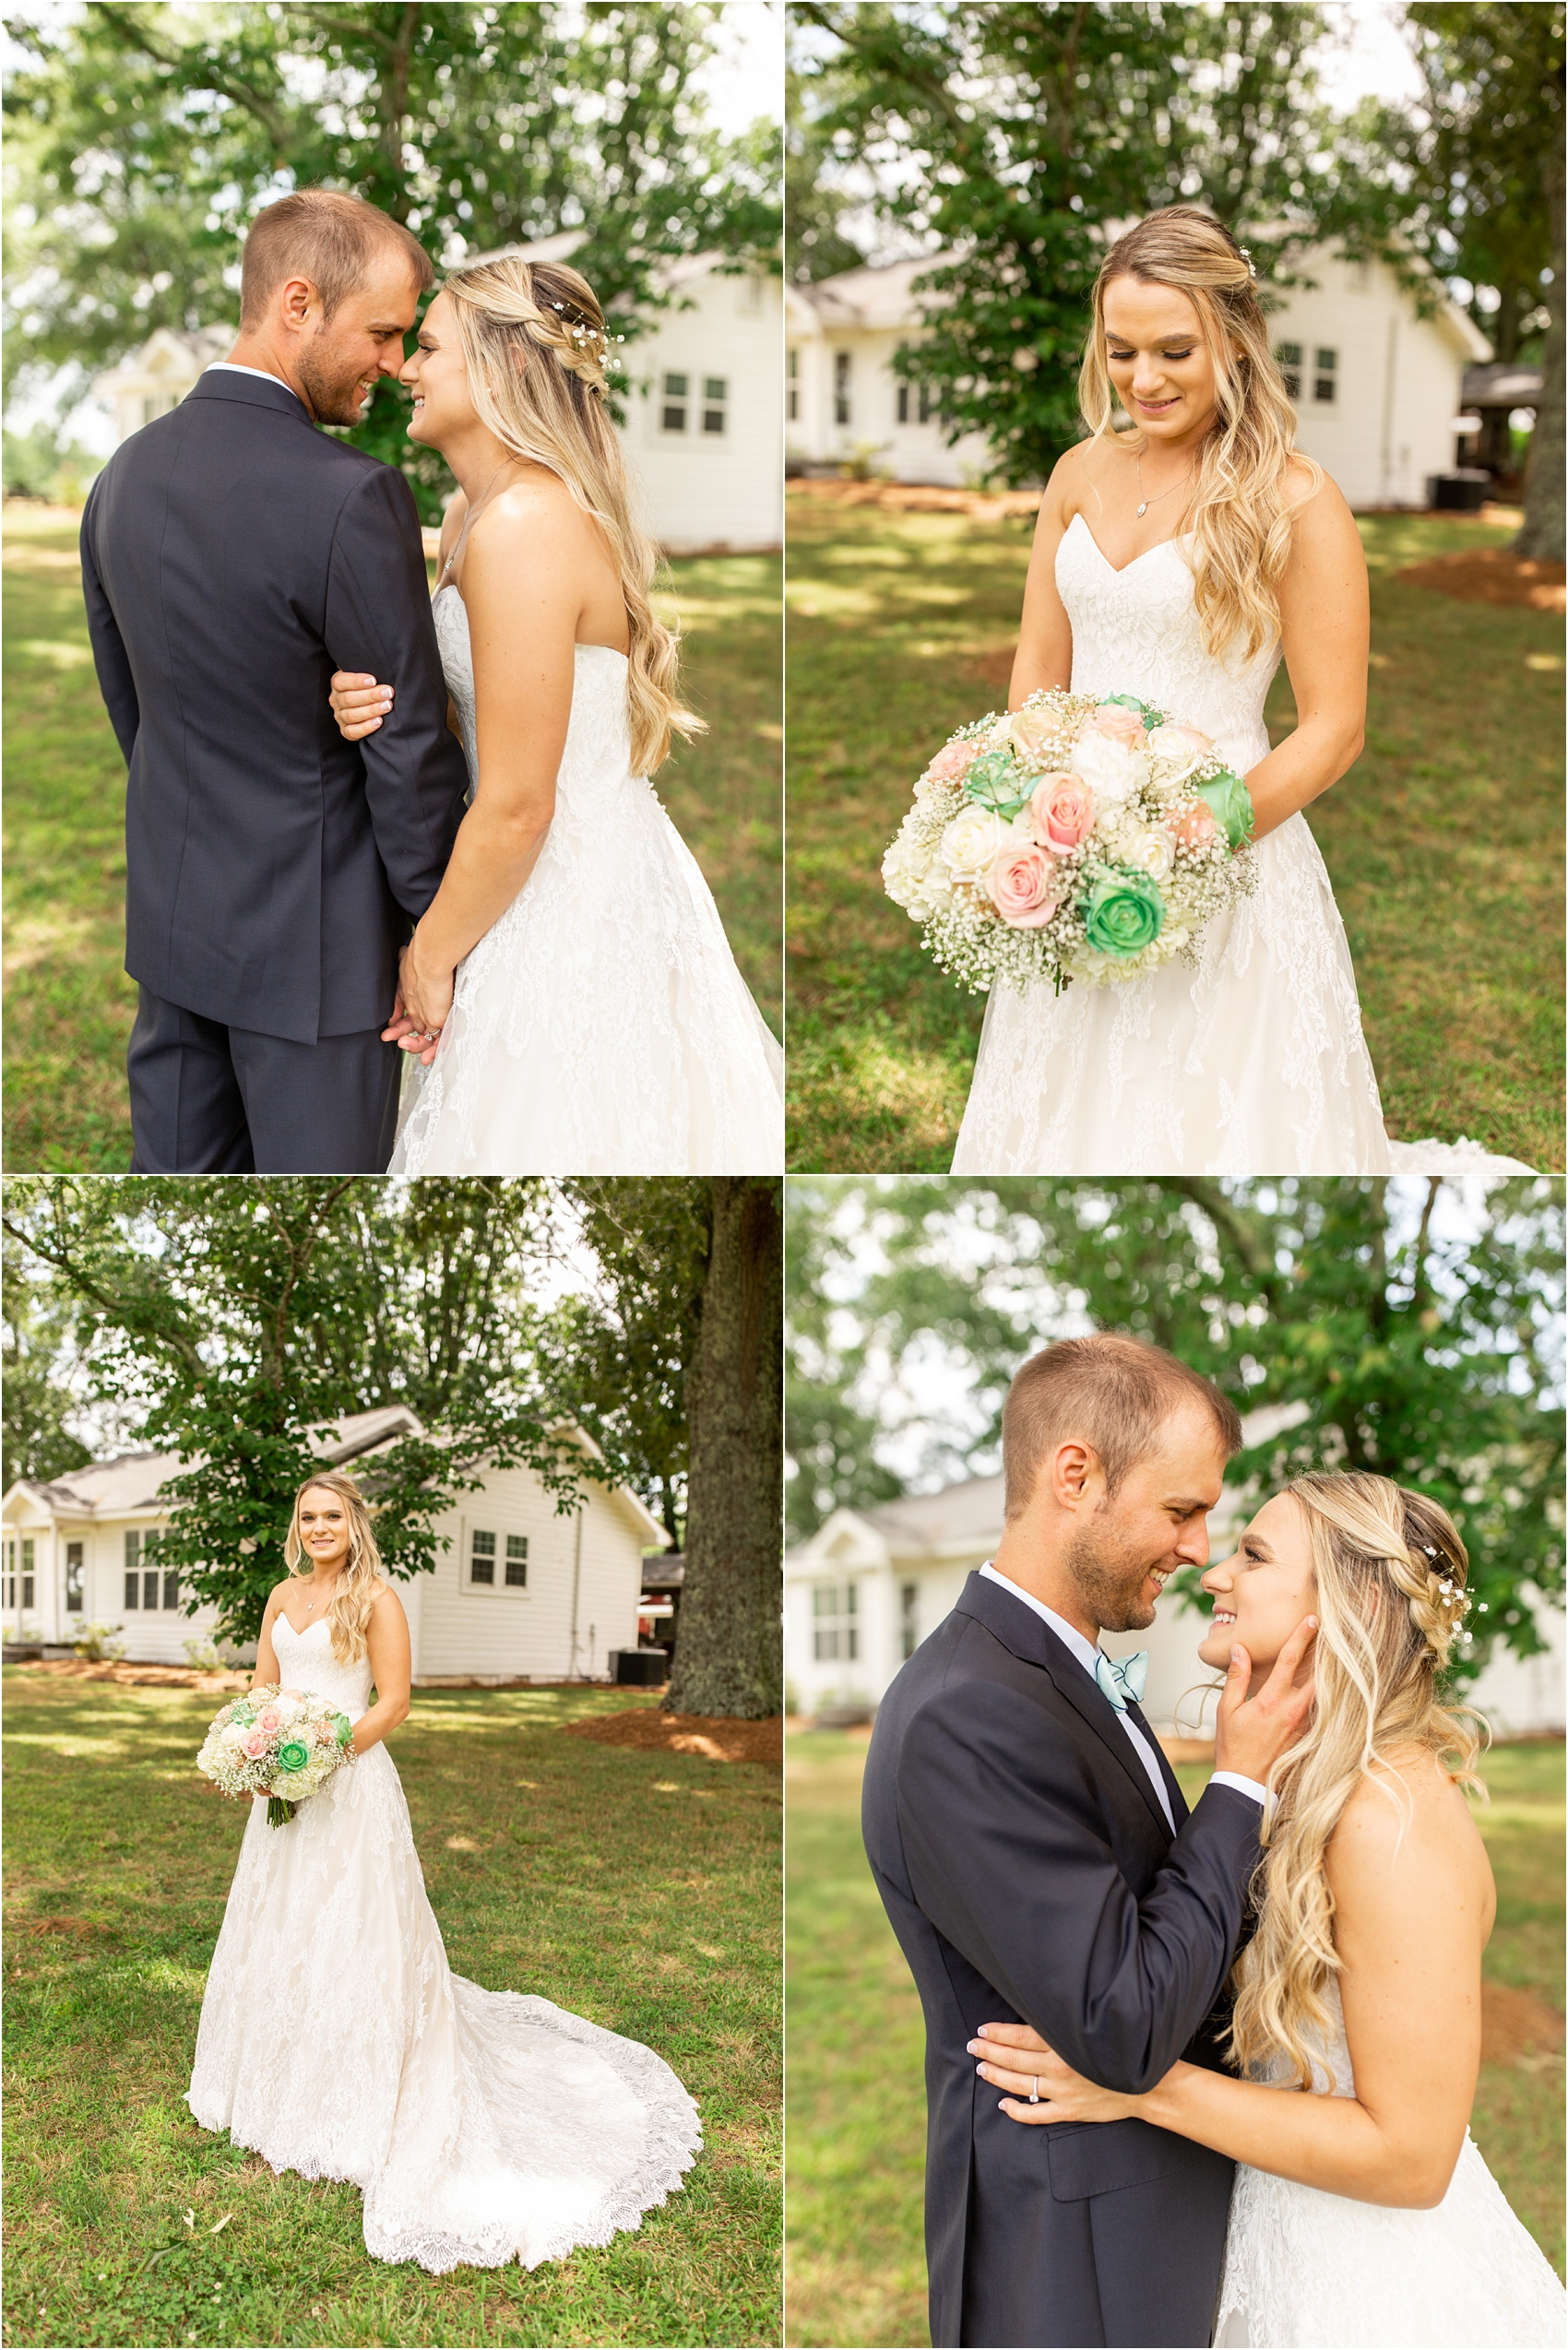 Savannah Eve Photography LLC- Wandolowski-Boyer Wedding-Blog-16.jpg